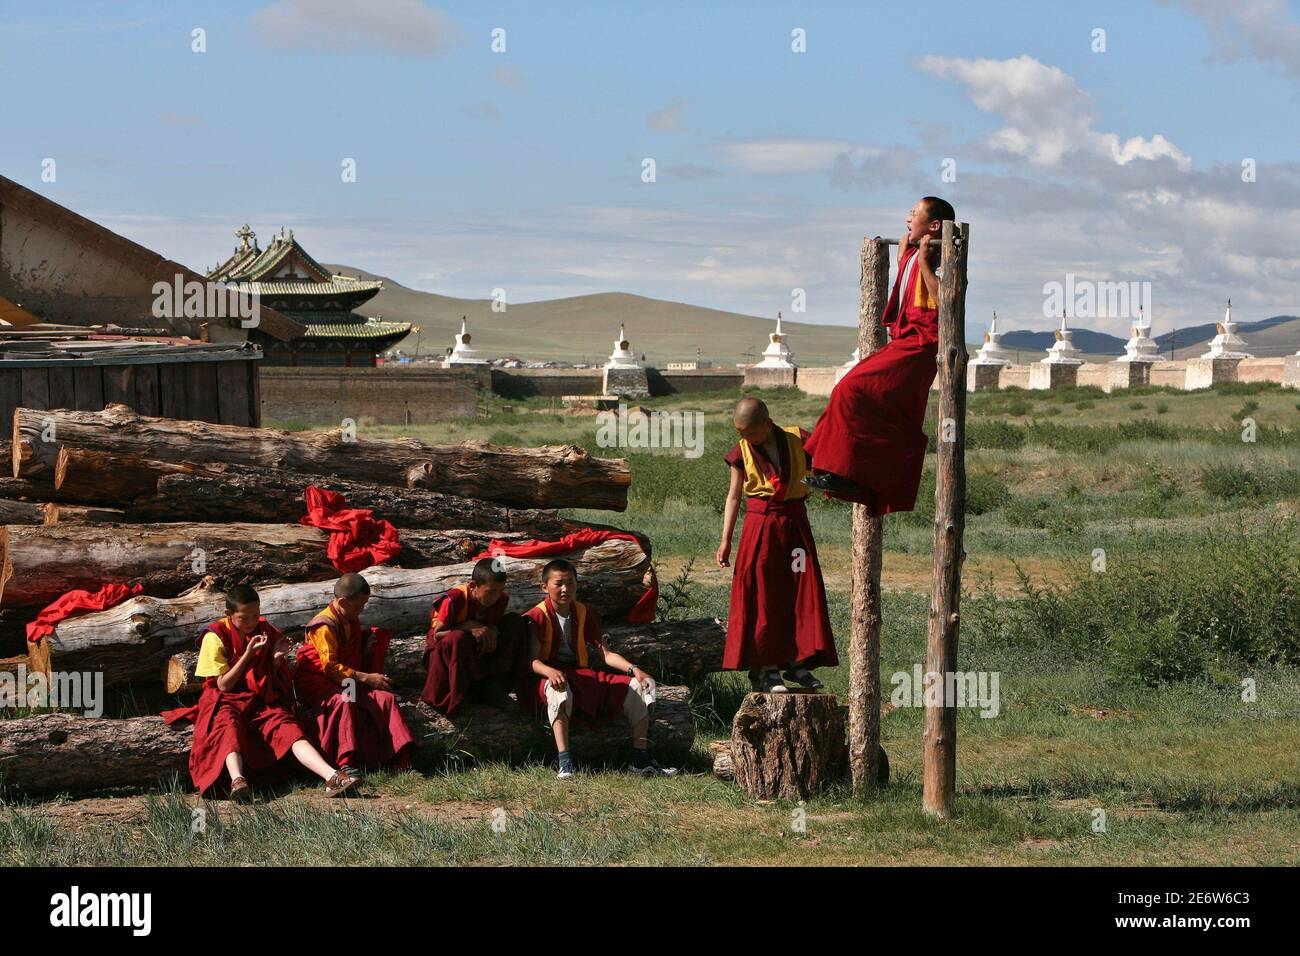 Buddhist monks play at the backyard of the Erdene Zeu monastery in Kharahorin, some 380 km (236 miles) west of Ulan Bator, July 8, 2006. The Erdene Zeu monastery was ransacked during the Stalinist period, and worship was forbidden throughout the Communist era, but Buddhism is experiencing a revival since Mongolia overthrew decades of Soviet dominance in 1991. Stock Photo